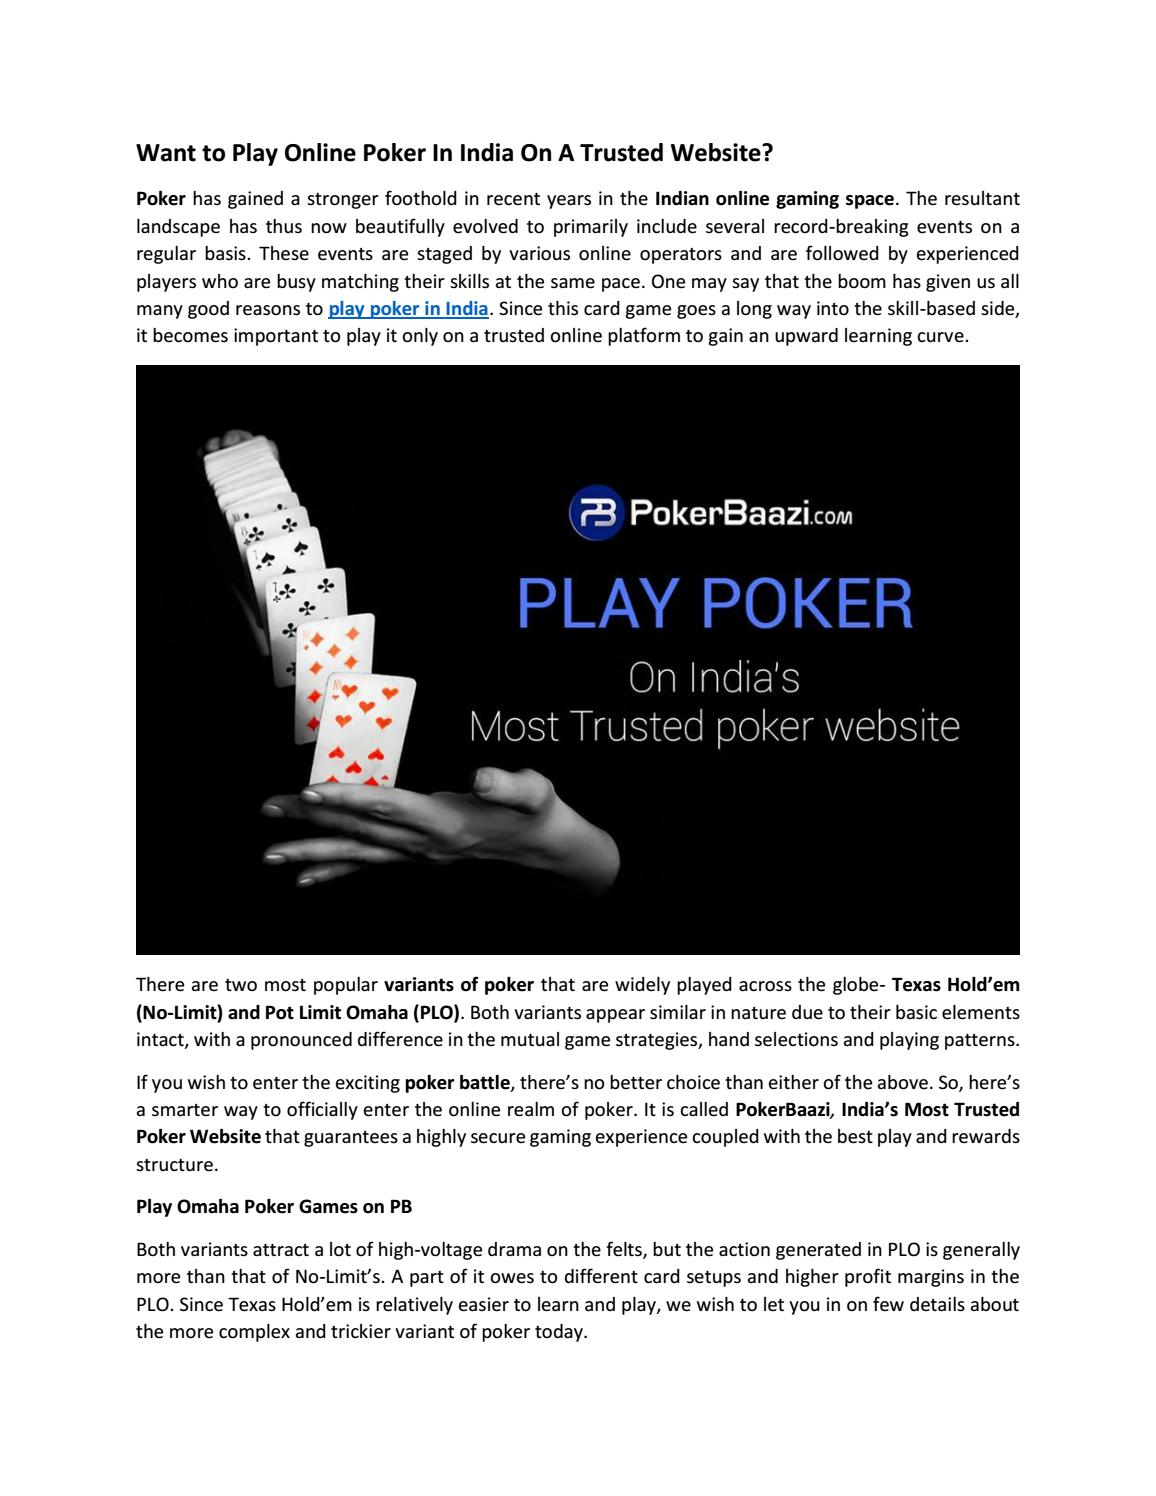 Want To Play Online Poker In India On A Trusted Website By Most Trusted Poker Online Sites In Delhi India Issuu